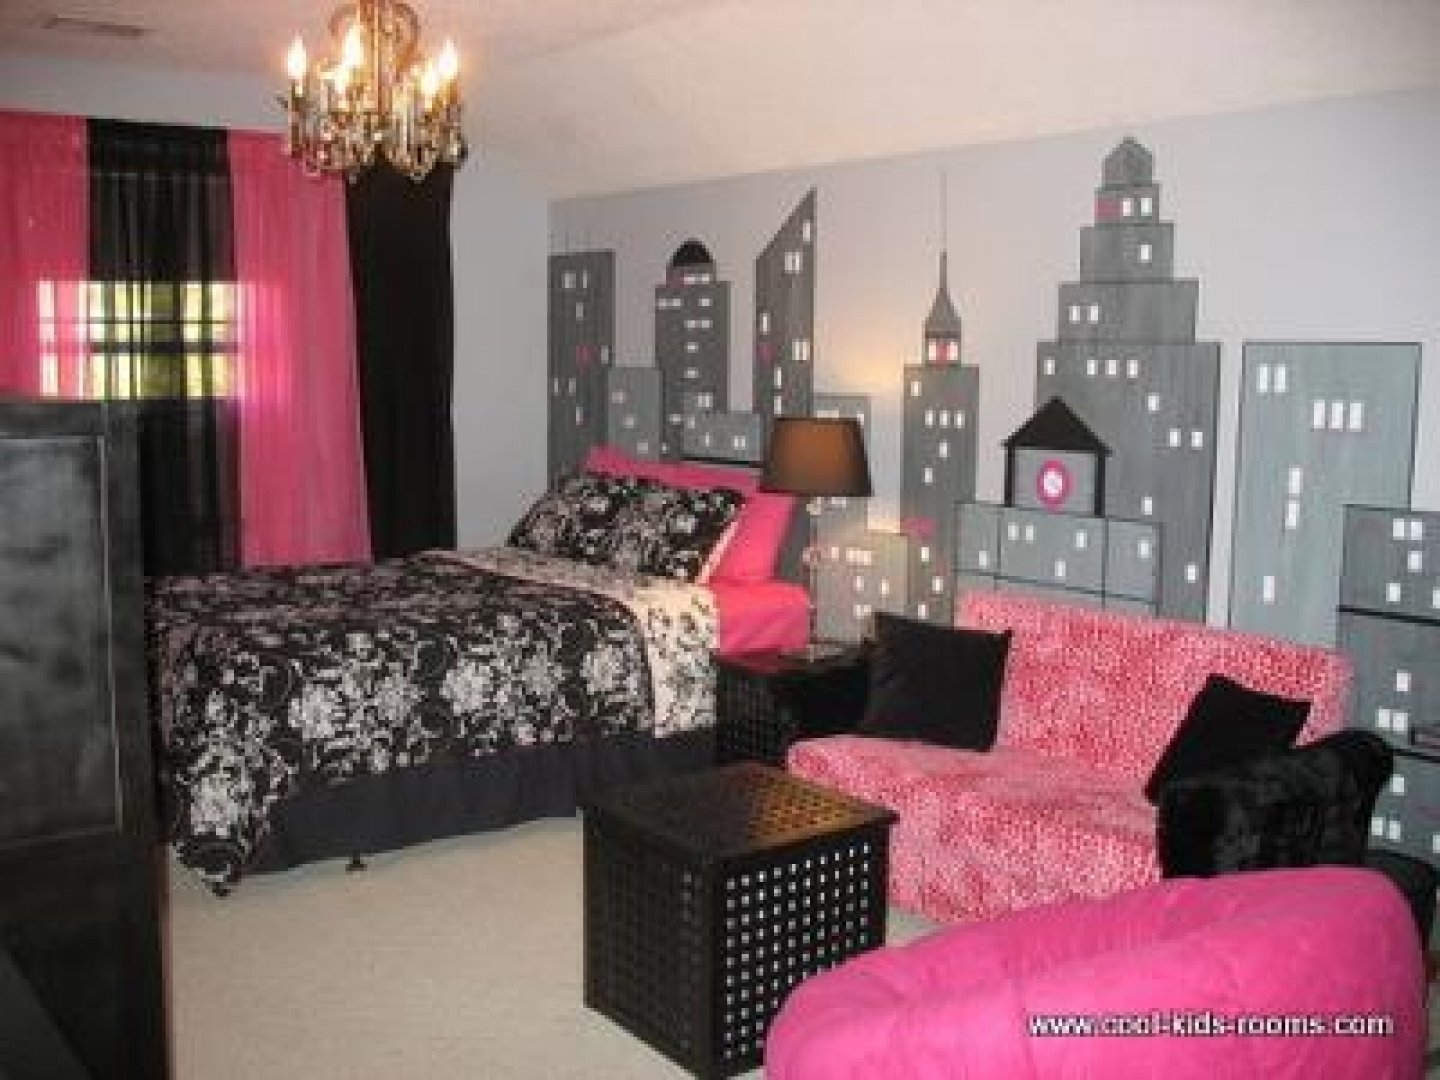 10 Most Recommended Pink Black And White Room Ideas black white and pink themed bedroom e280a2 white bedroom design 2 2020